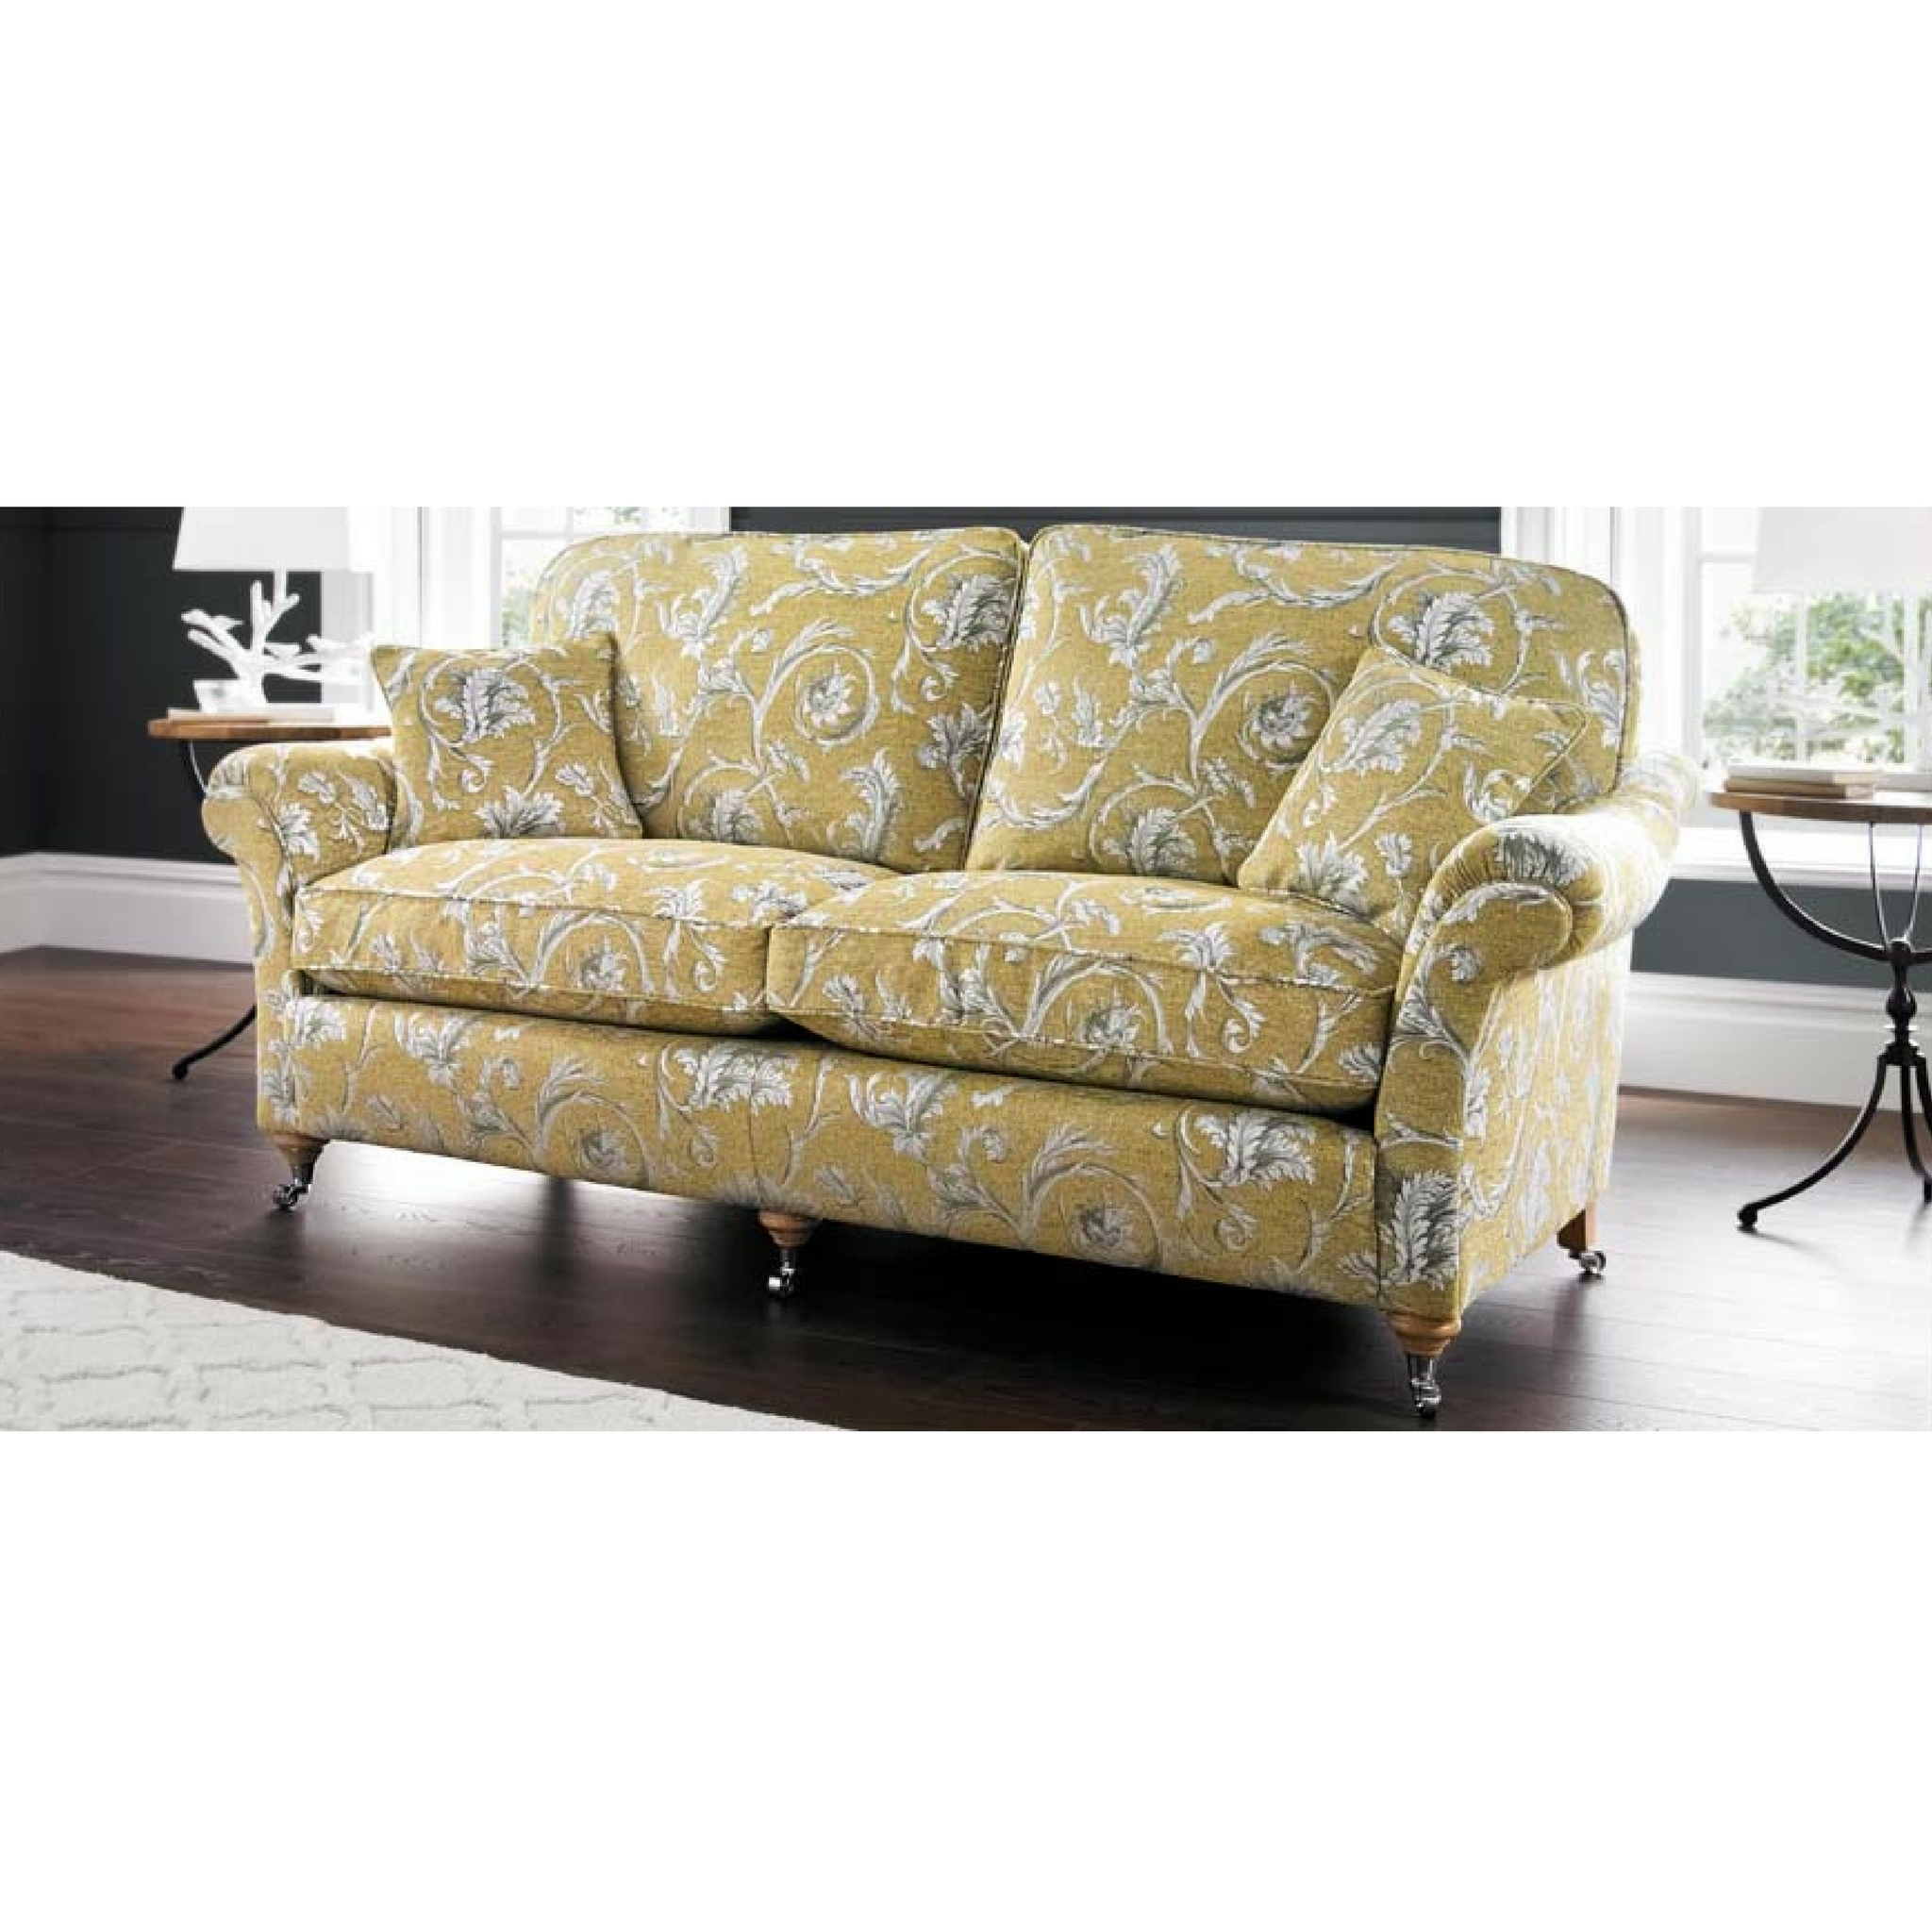 Florence Grand Sofa – Birtchnells Furniture Throughout Popular Florence Grand Sofas (View 6 of 15)